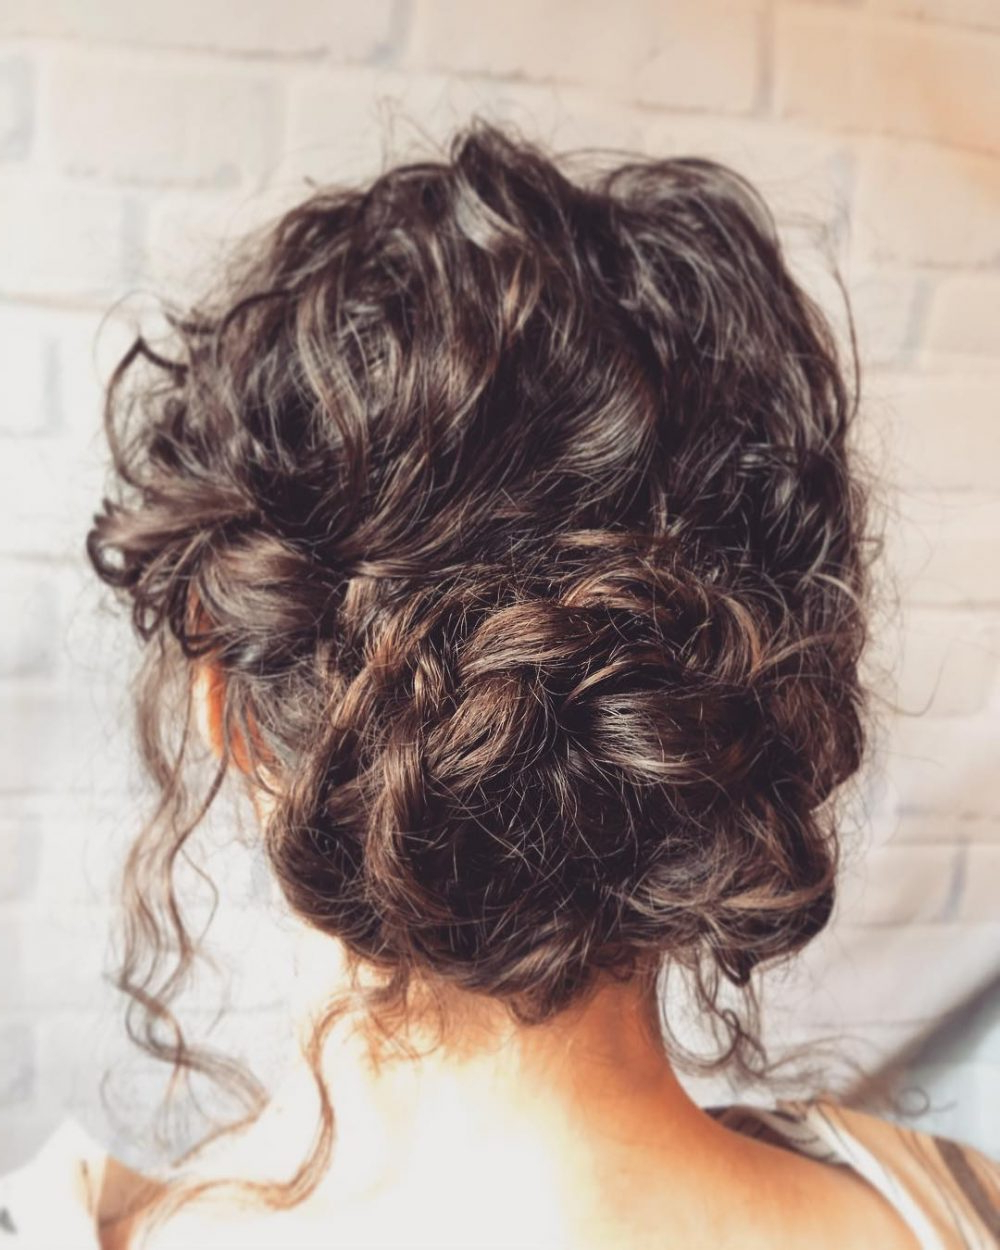 18 Stunning Curly Prom Hairstyles For 2019 – Updos, Down Do's & Braids! In Well Known Charming Waves And Curls Prom Hairstyles (Gallery 13 of 20)